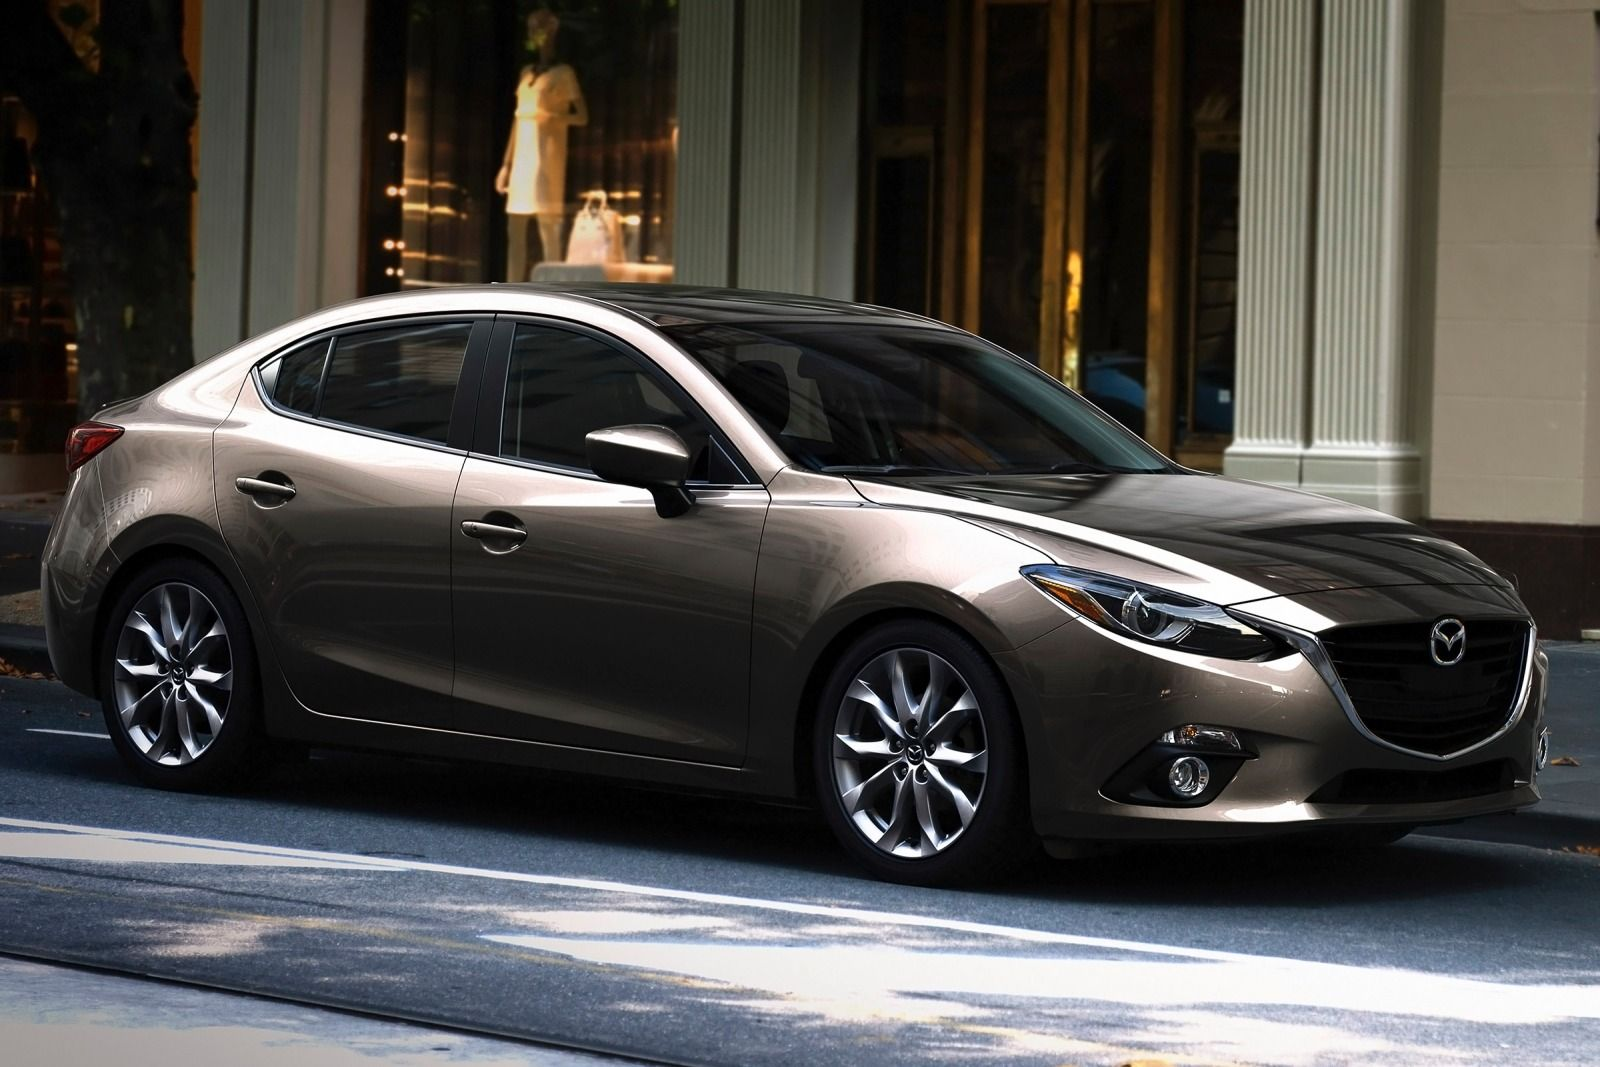 image new mazda price car review featured reviews autotrader large